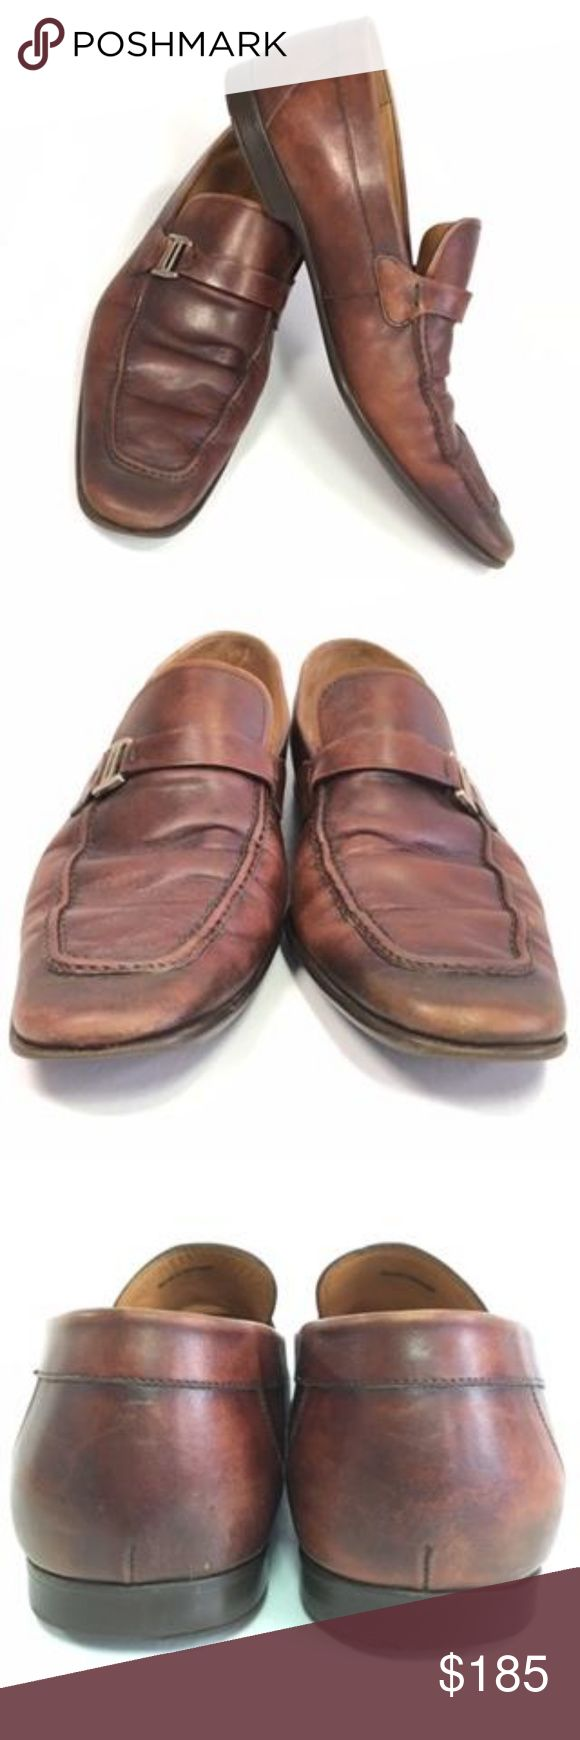 Magnanni Shoes Bit Loafers Spanish Brown Size 12 Magnanni Shoes Bit Loafers Span...